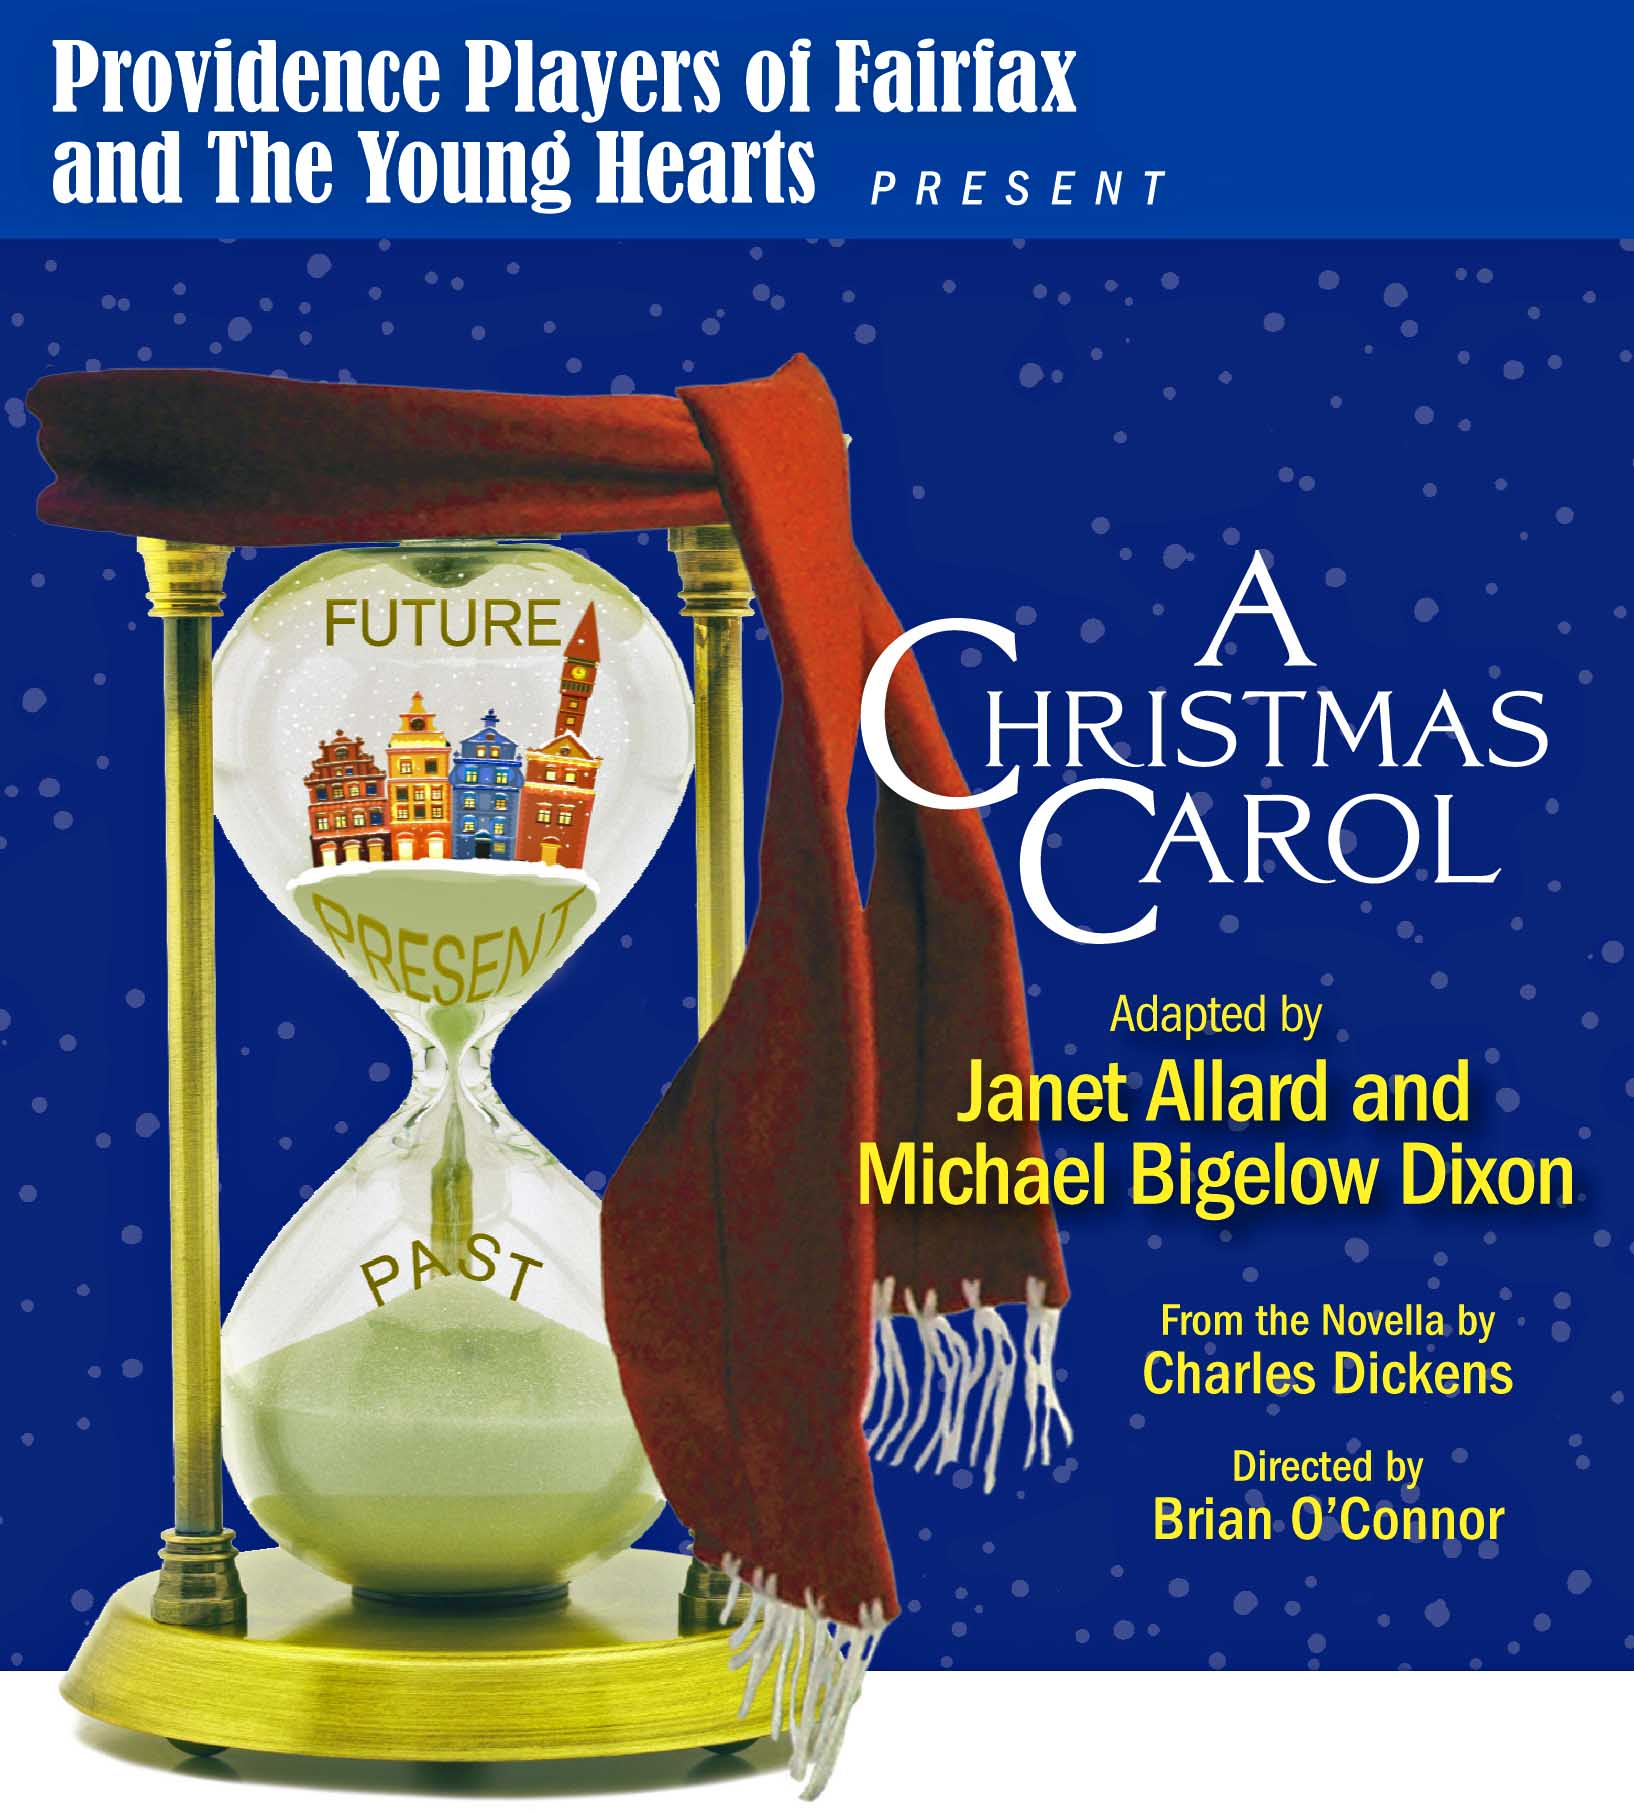 A Christmas Carol - December 6th through December 15th for 9 Performances: Thurs, Fri, Sat at 7:30 PM. Sat and Sun at 2:00 PM